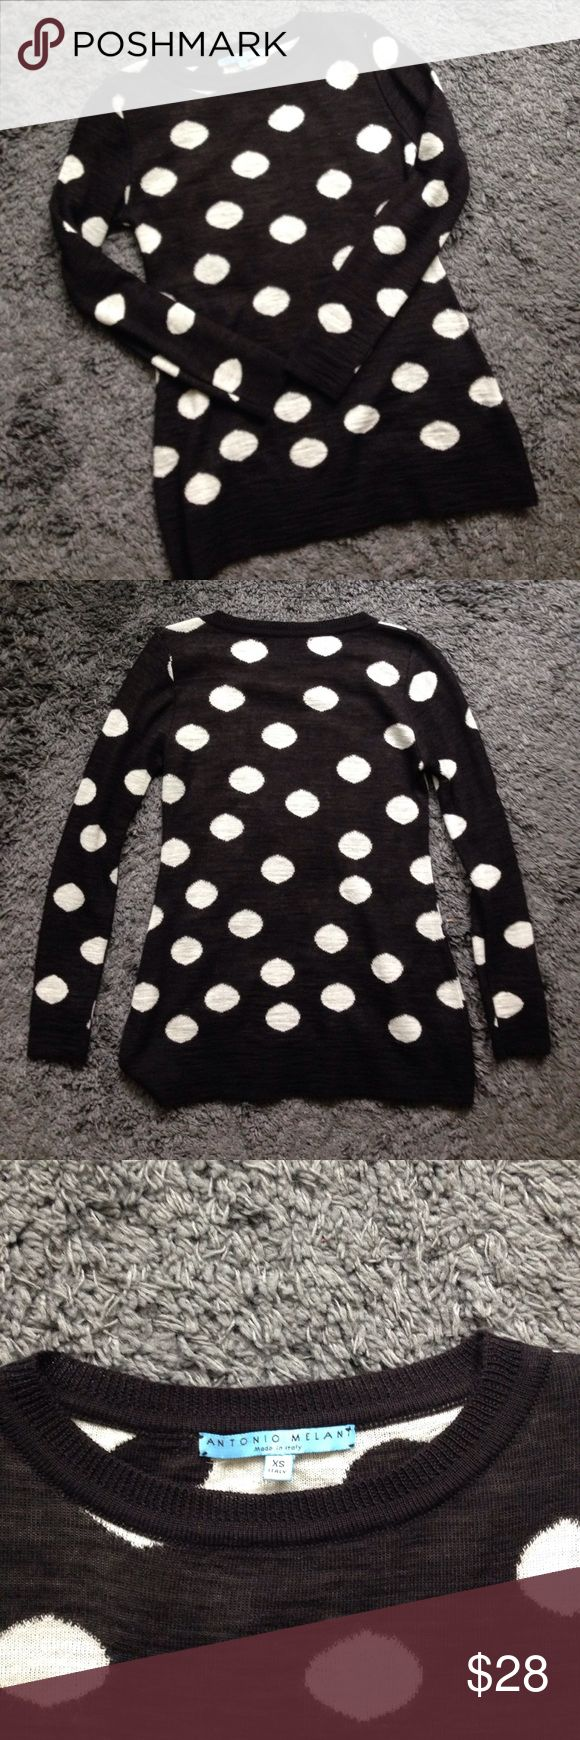 Antonio Melani made in Italy polka dot sweater XS This sweater is so nice and soft! Antonio Melani, made in Italy, size extra small. Has a bit of stretch to it. Has two little funny stitches, barely noticeable and not holes, but otherwise is in excellent used condition! Feel free to ask questions or make offers! Please pay attention to measurements!                                           Bust: 32 inches  Waist: 30.5 inches  Overall length: just under 26 inches ANTONIO MELANI Sweaters Crew…